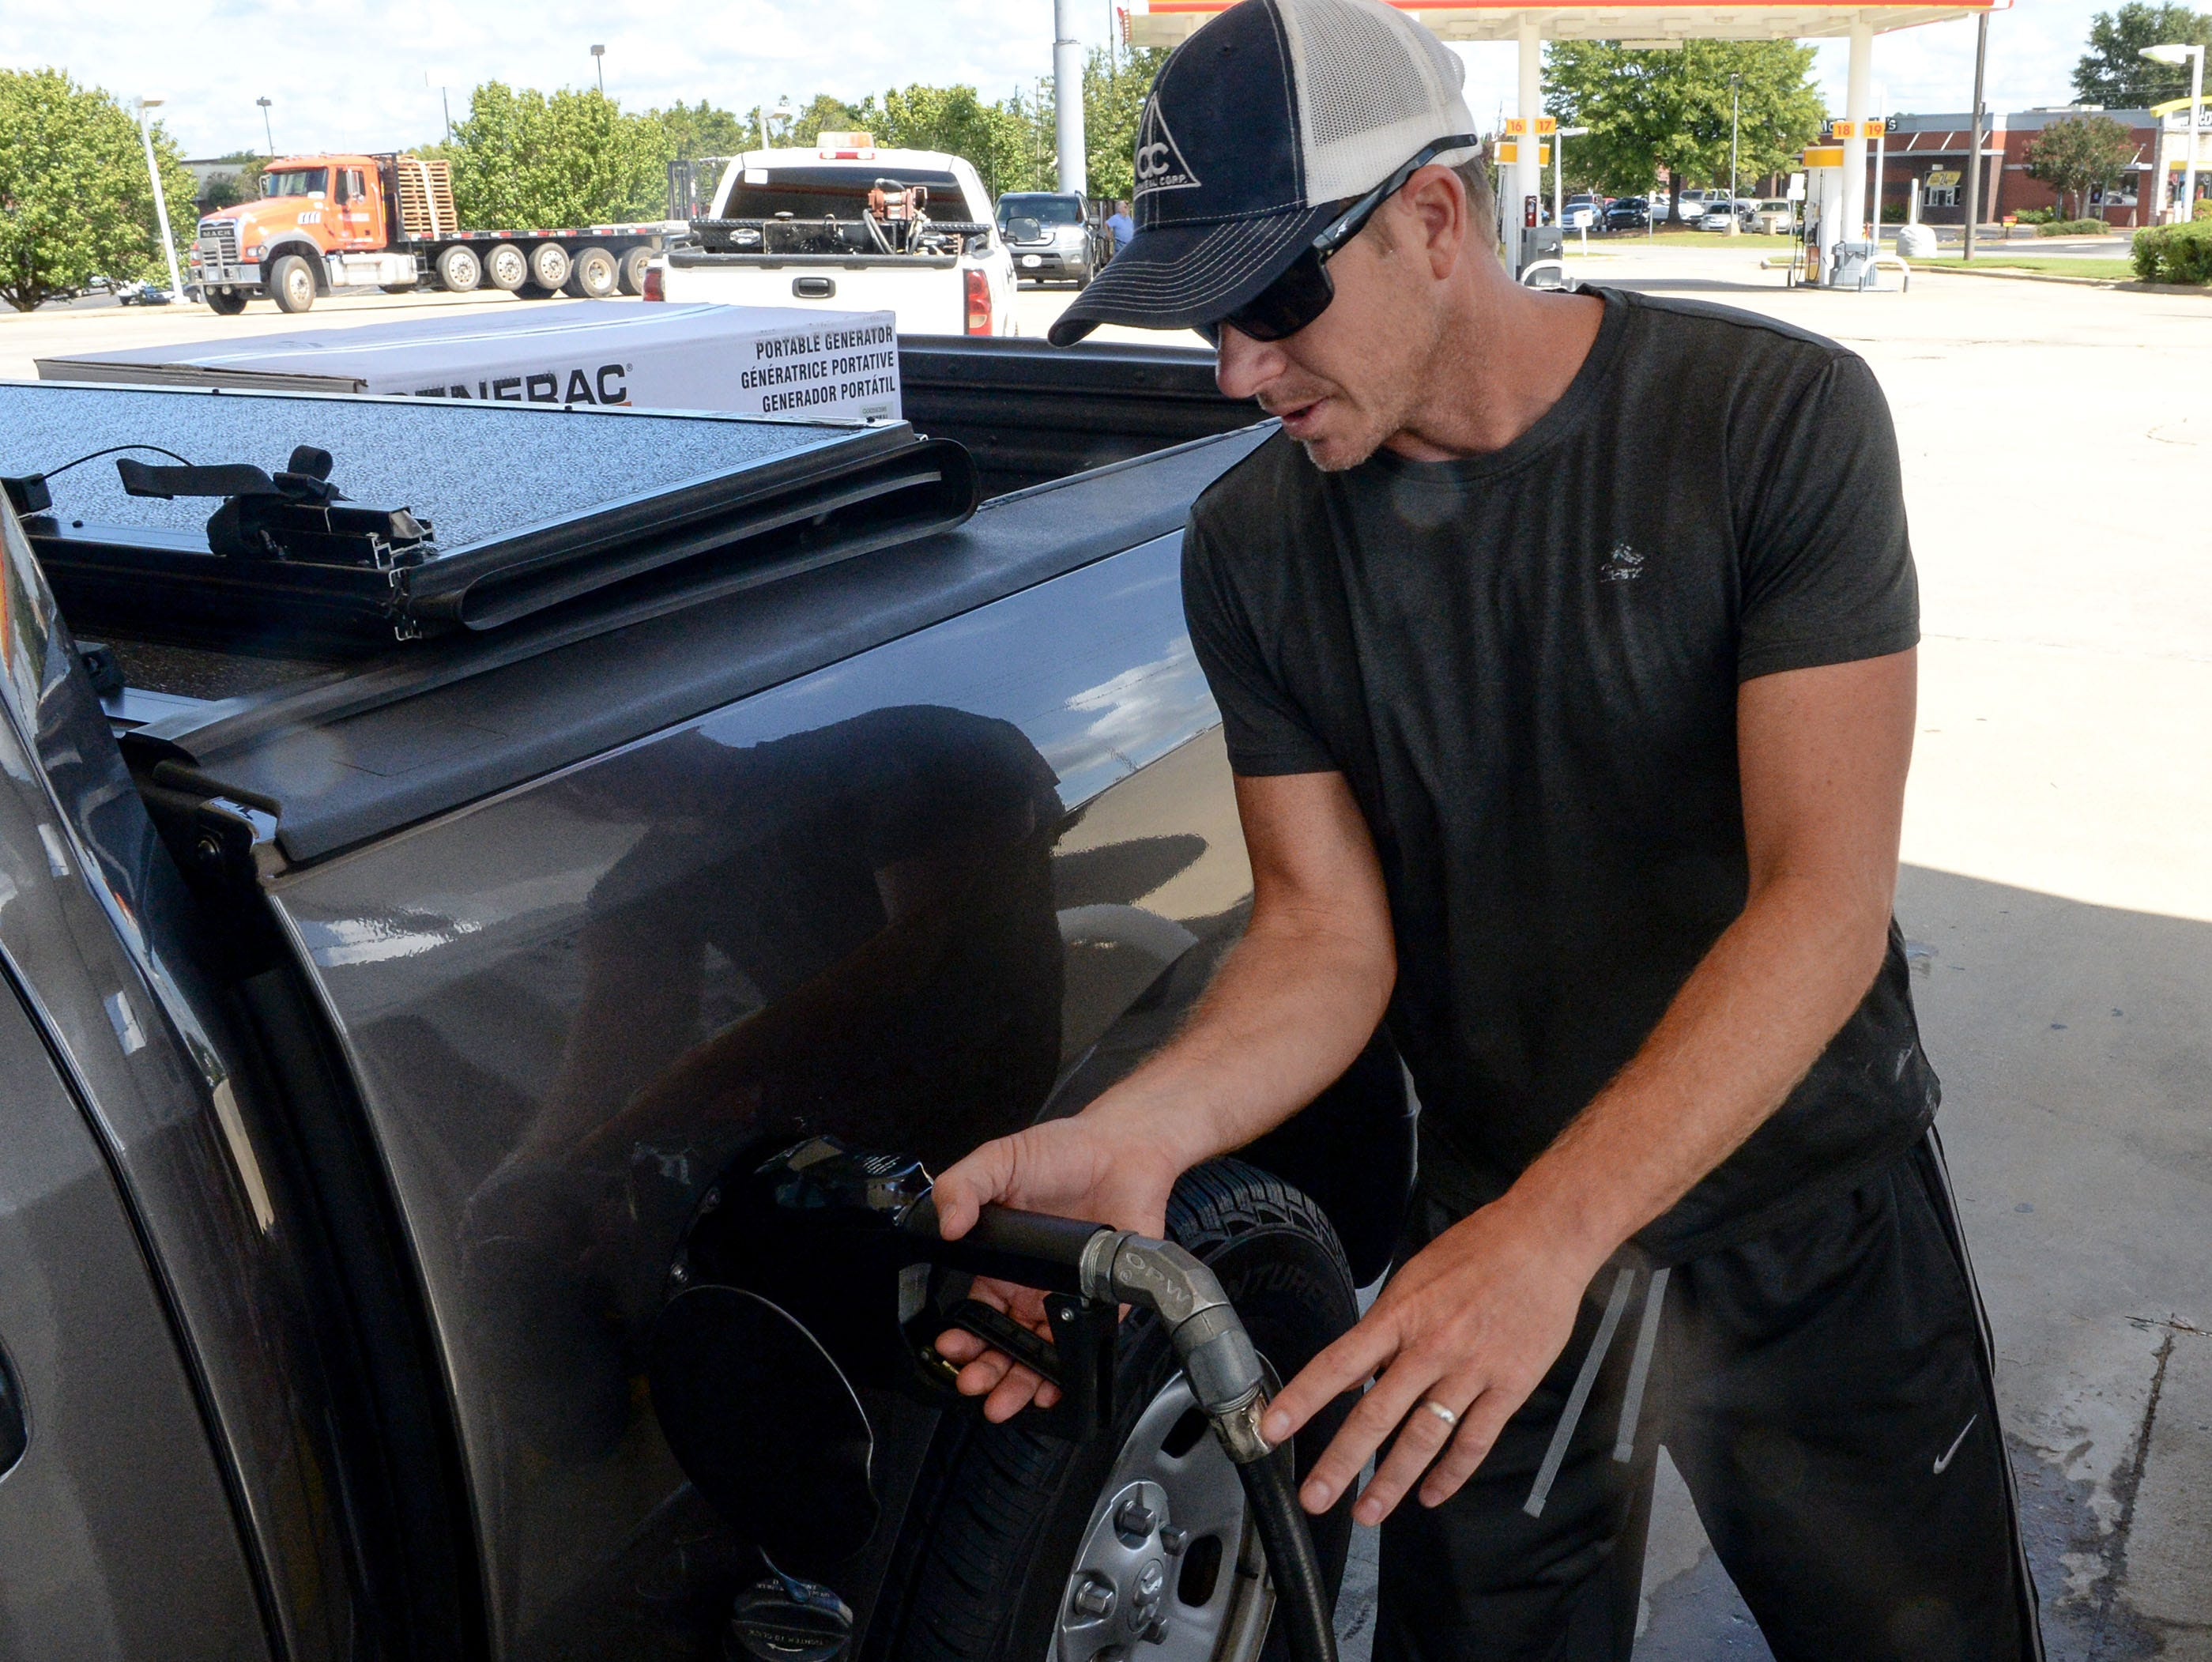 Sep 11, 2018; Wilmington, NC, USA; Chad Williams of Willow Springs, North Carolina, fills his gas tank up in Garner, N.C. on Tuesday, September 11, 2018. Williams also bought a generator as Hurricane Florence is expected to arrive in Wilmington, North Carolina late Thursday night through Friday morning.